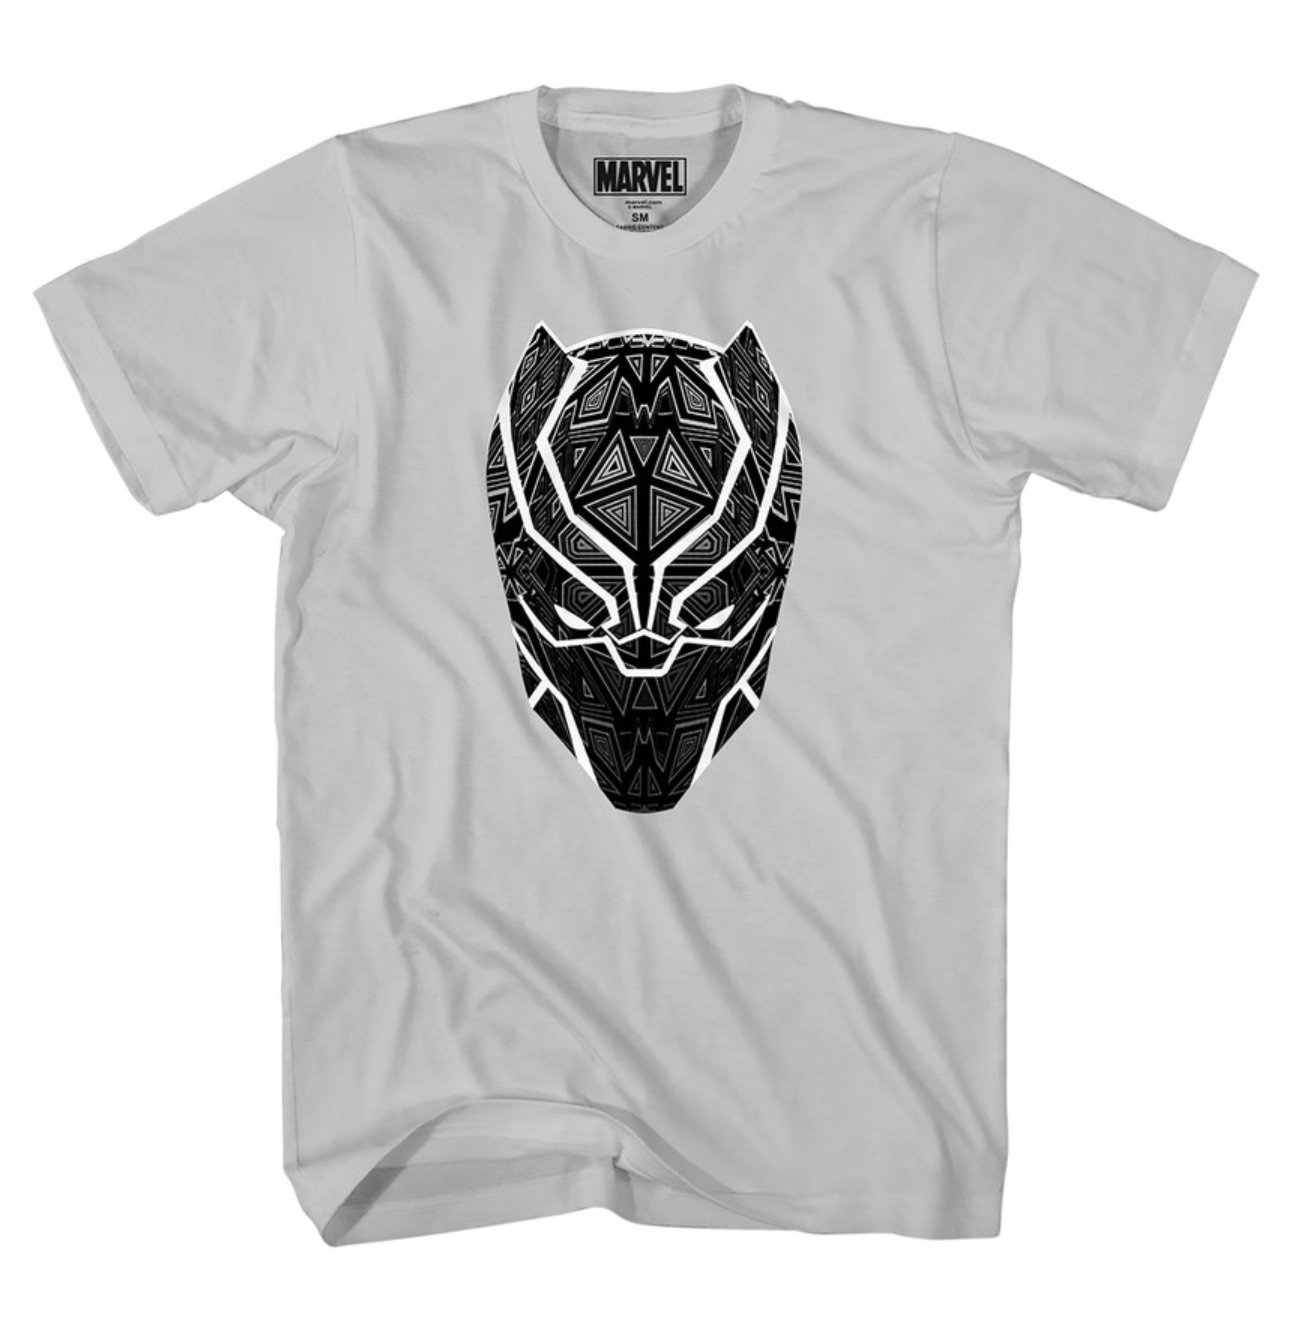 Cool kids' gifts under $15:  Marvel Black Panther tee